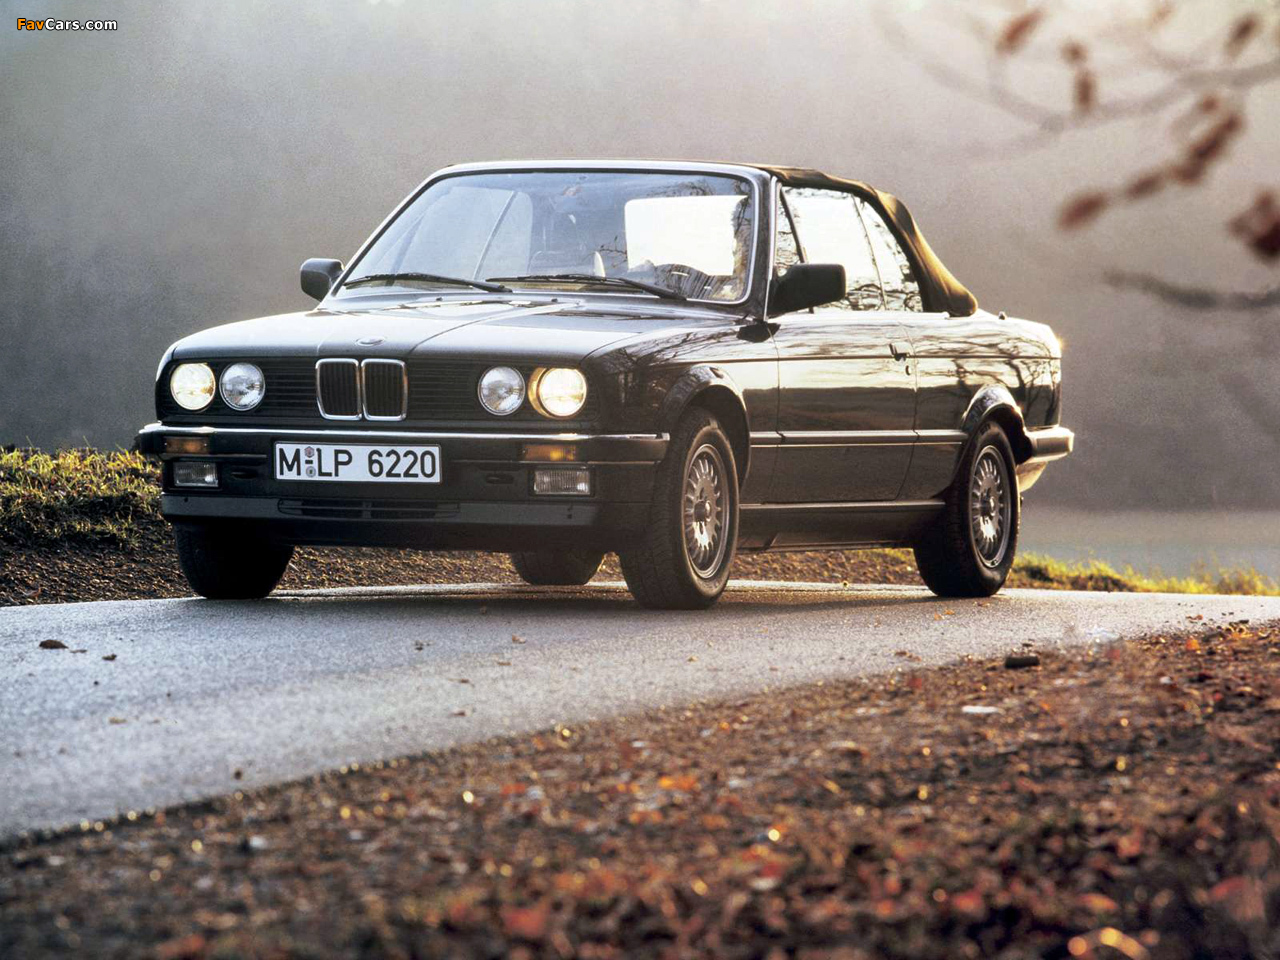 wallpapers of bmw 325i cabrio e30 1985 93 1280x960. Black Bedroom Furniture Sets. Home Design Ideas